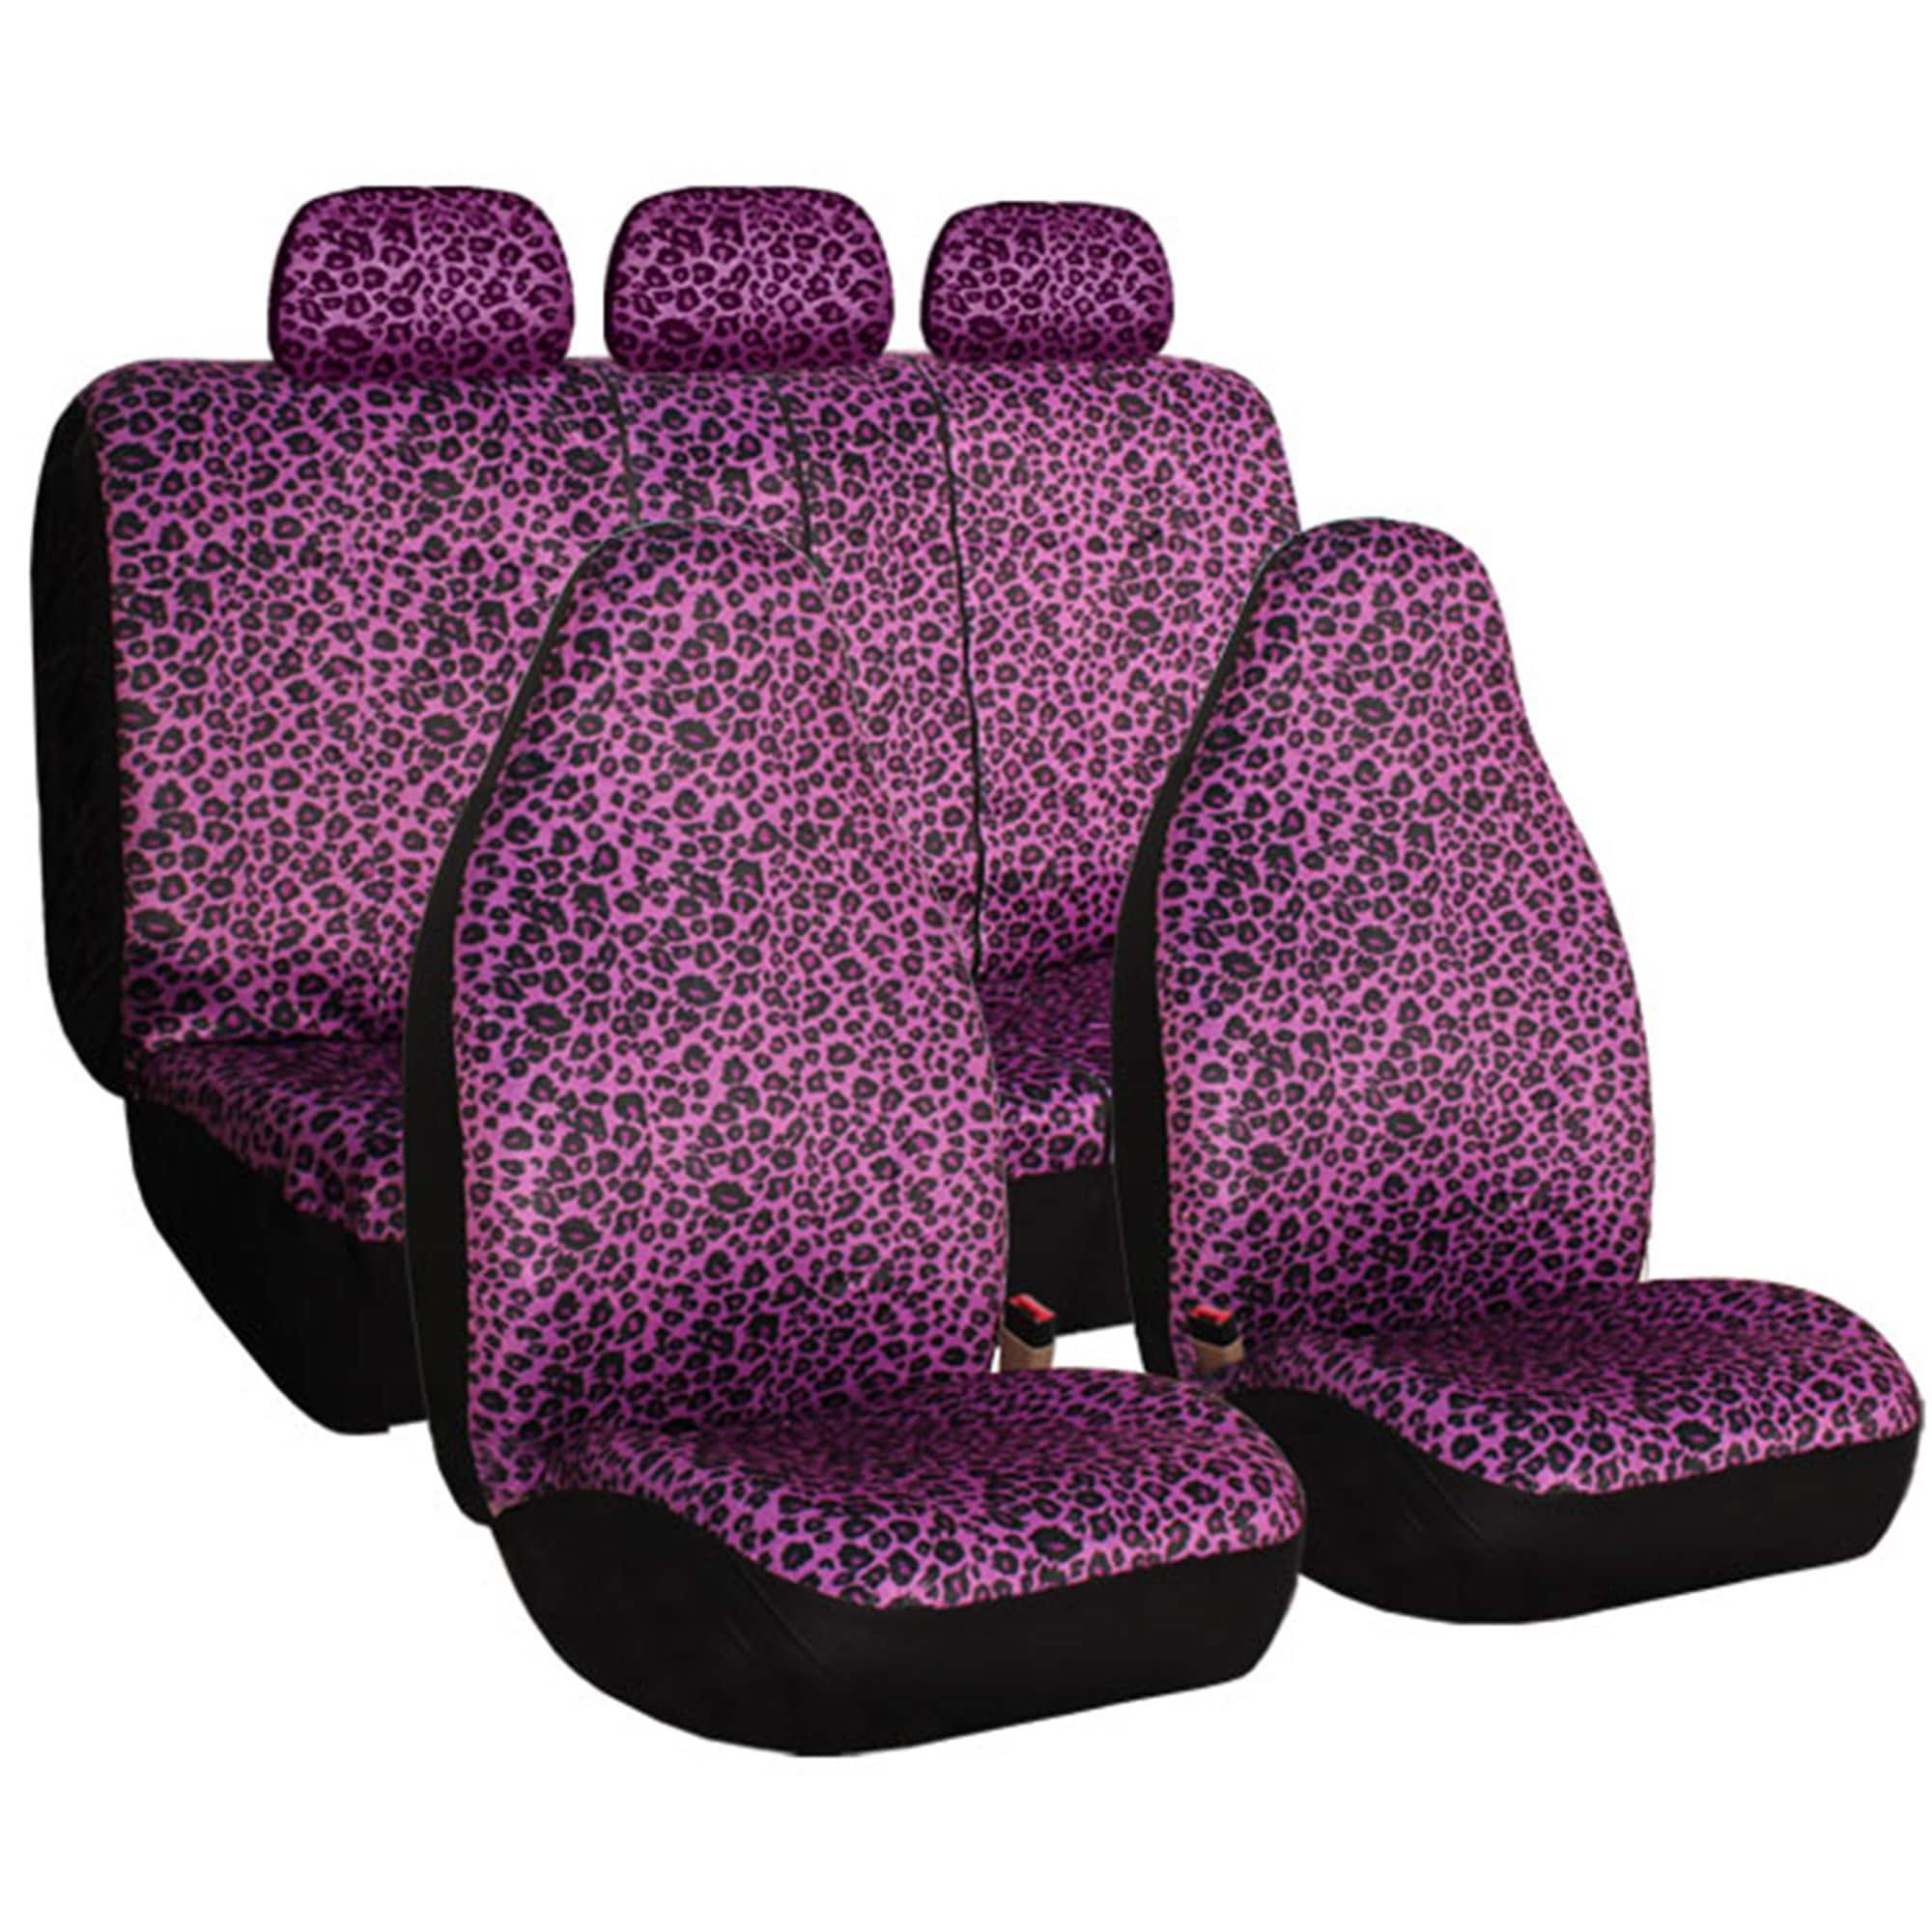 FH Group Purple Leopard Print Full Set Car Seat Covers (P...